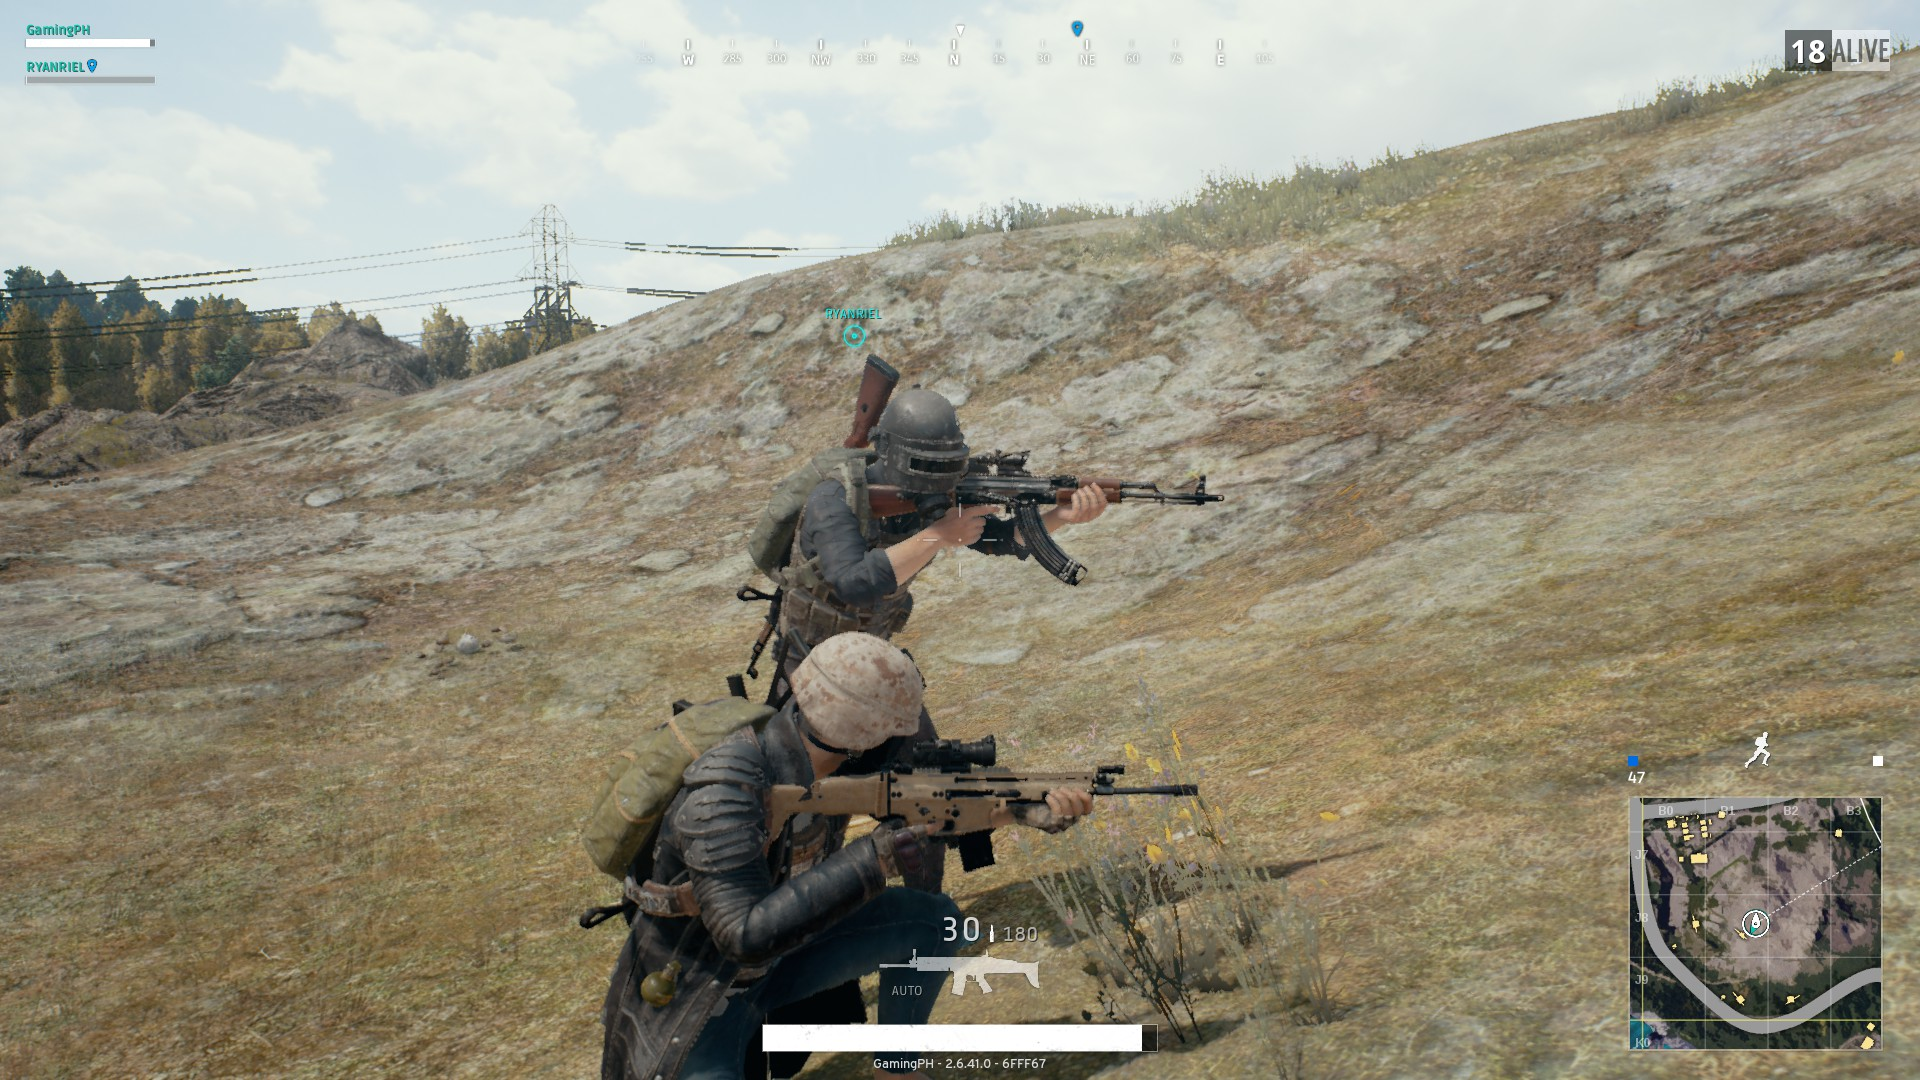 Pubg Scope Wallpaper: How To Scope In PlayerUnknown's Battlegrounds On XBOX One